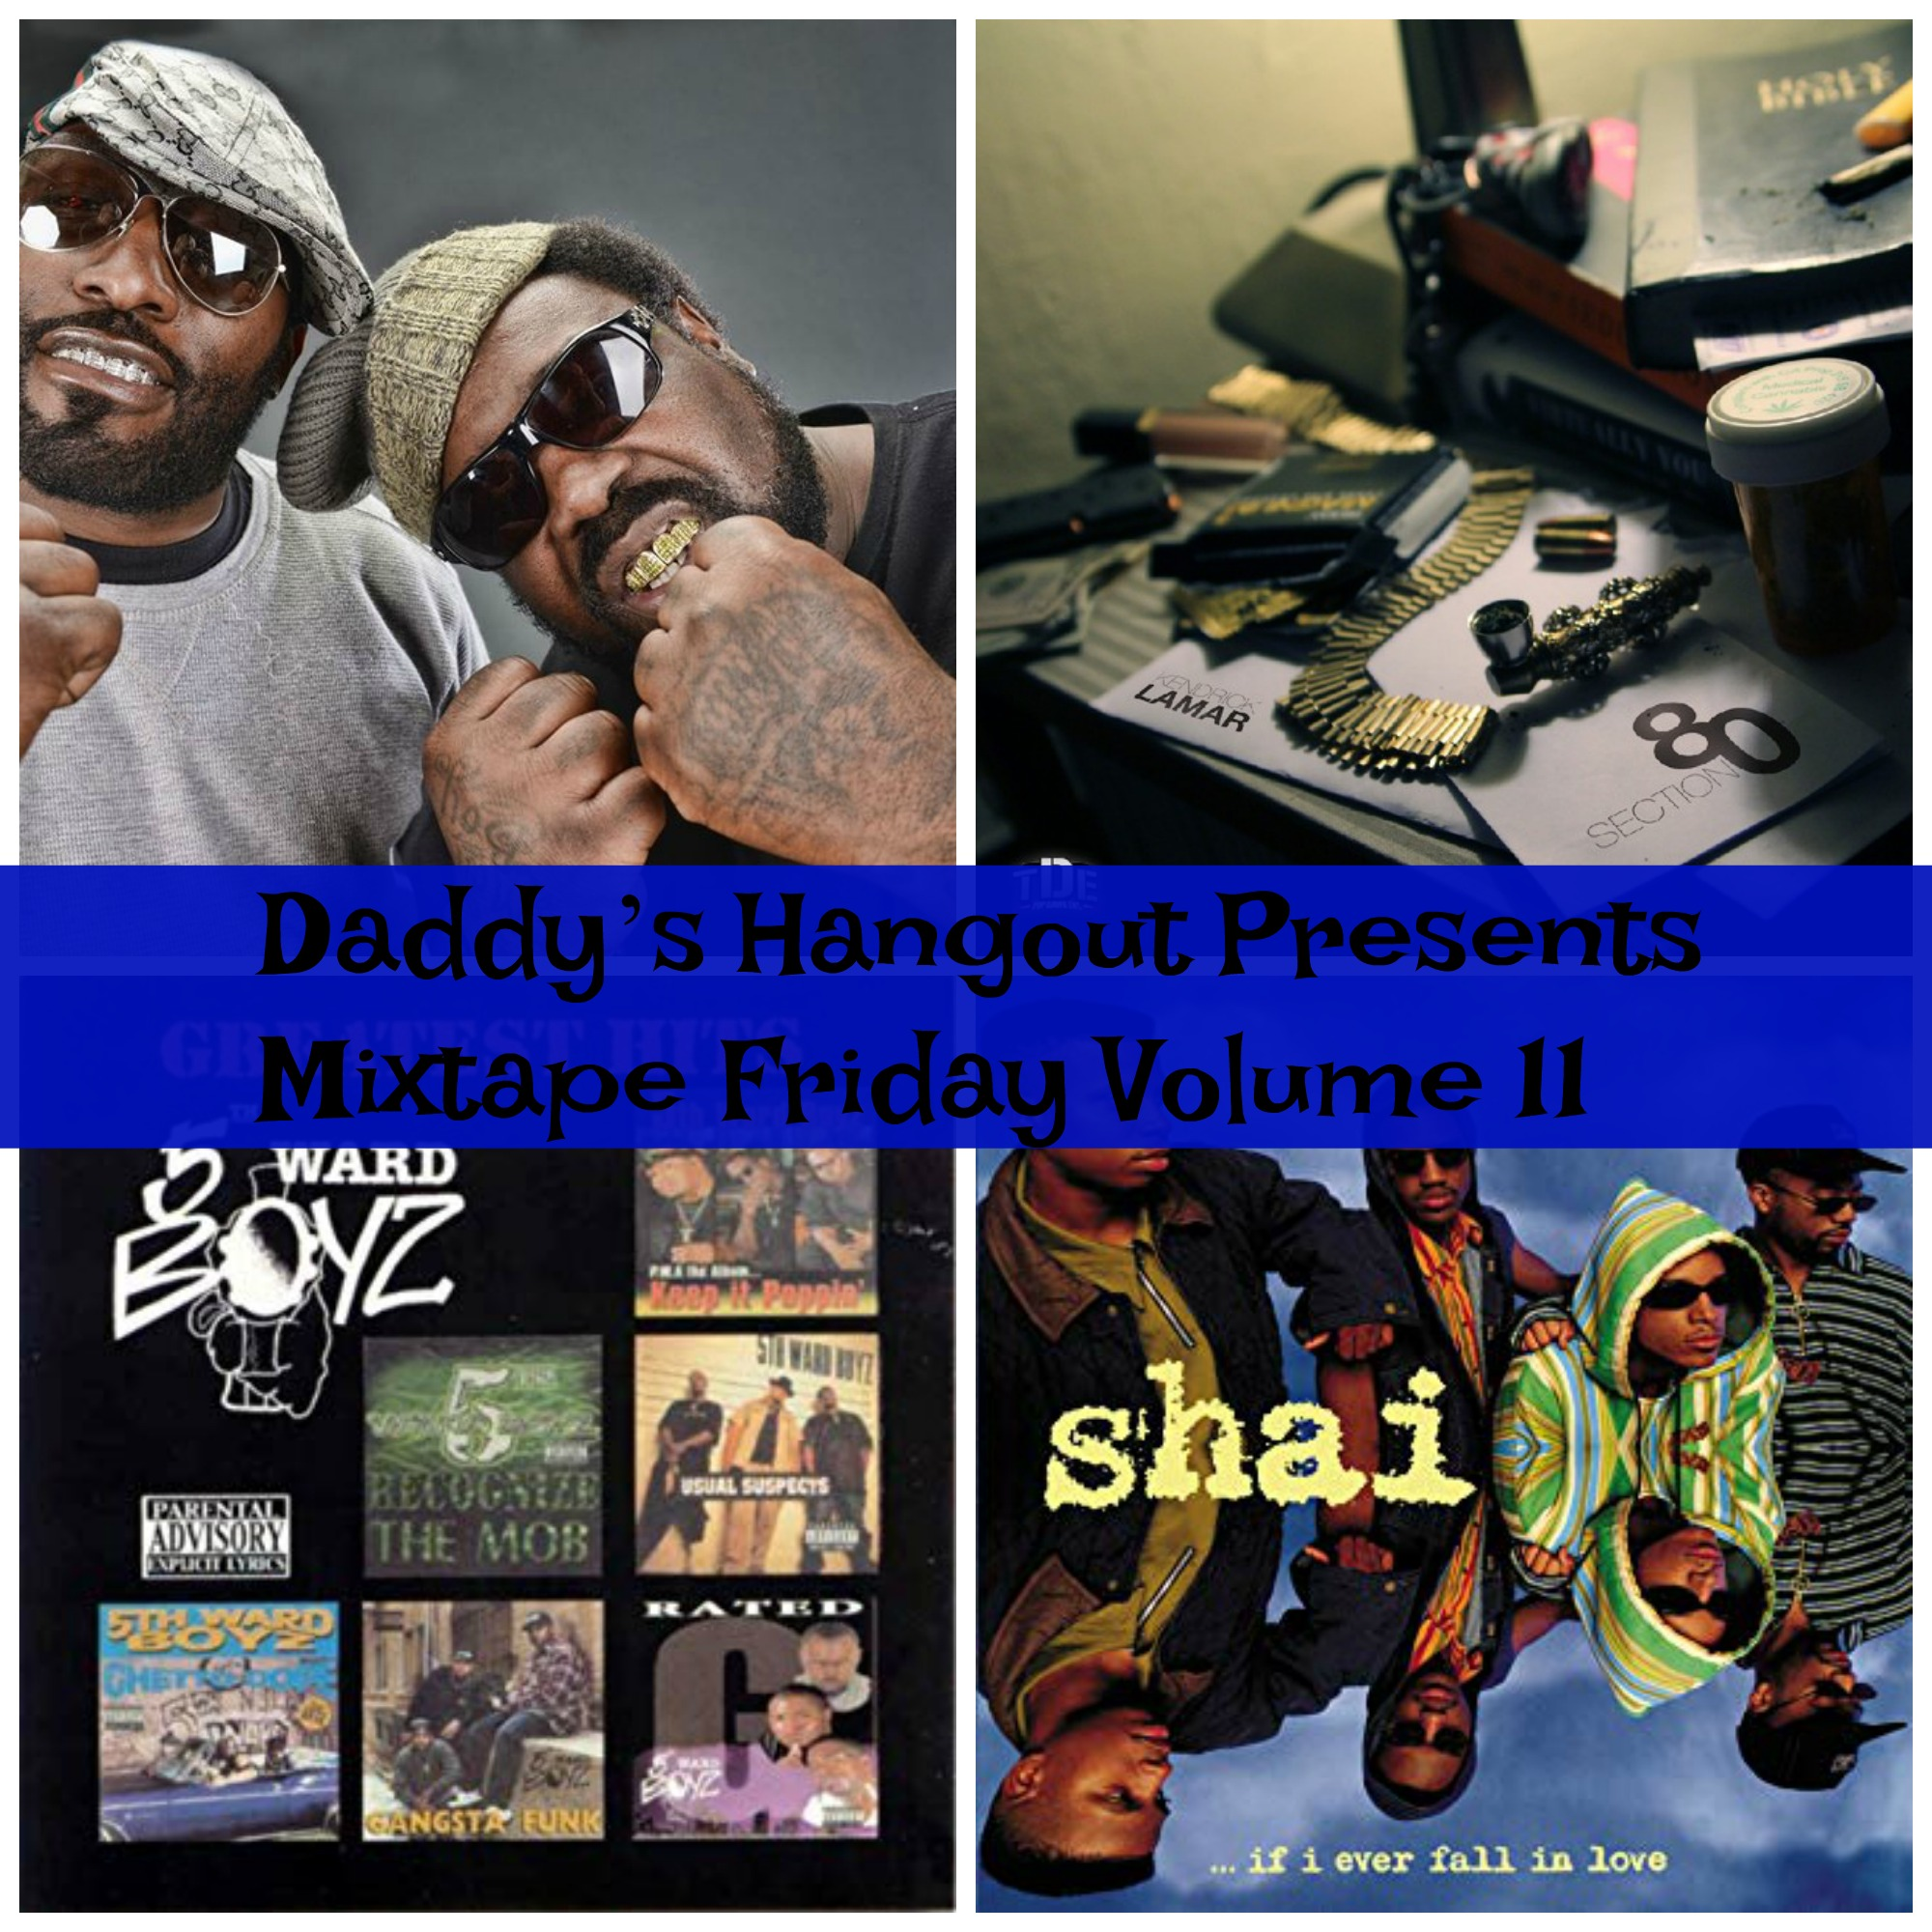 Daddy's Hangout Presents Mixtape Friday Volume 11